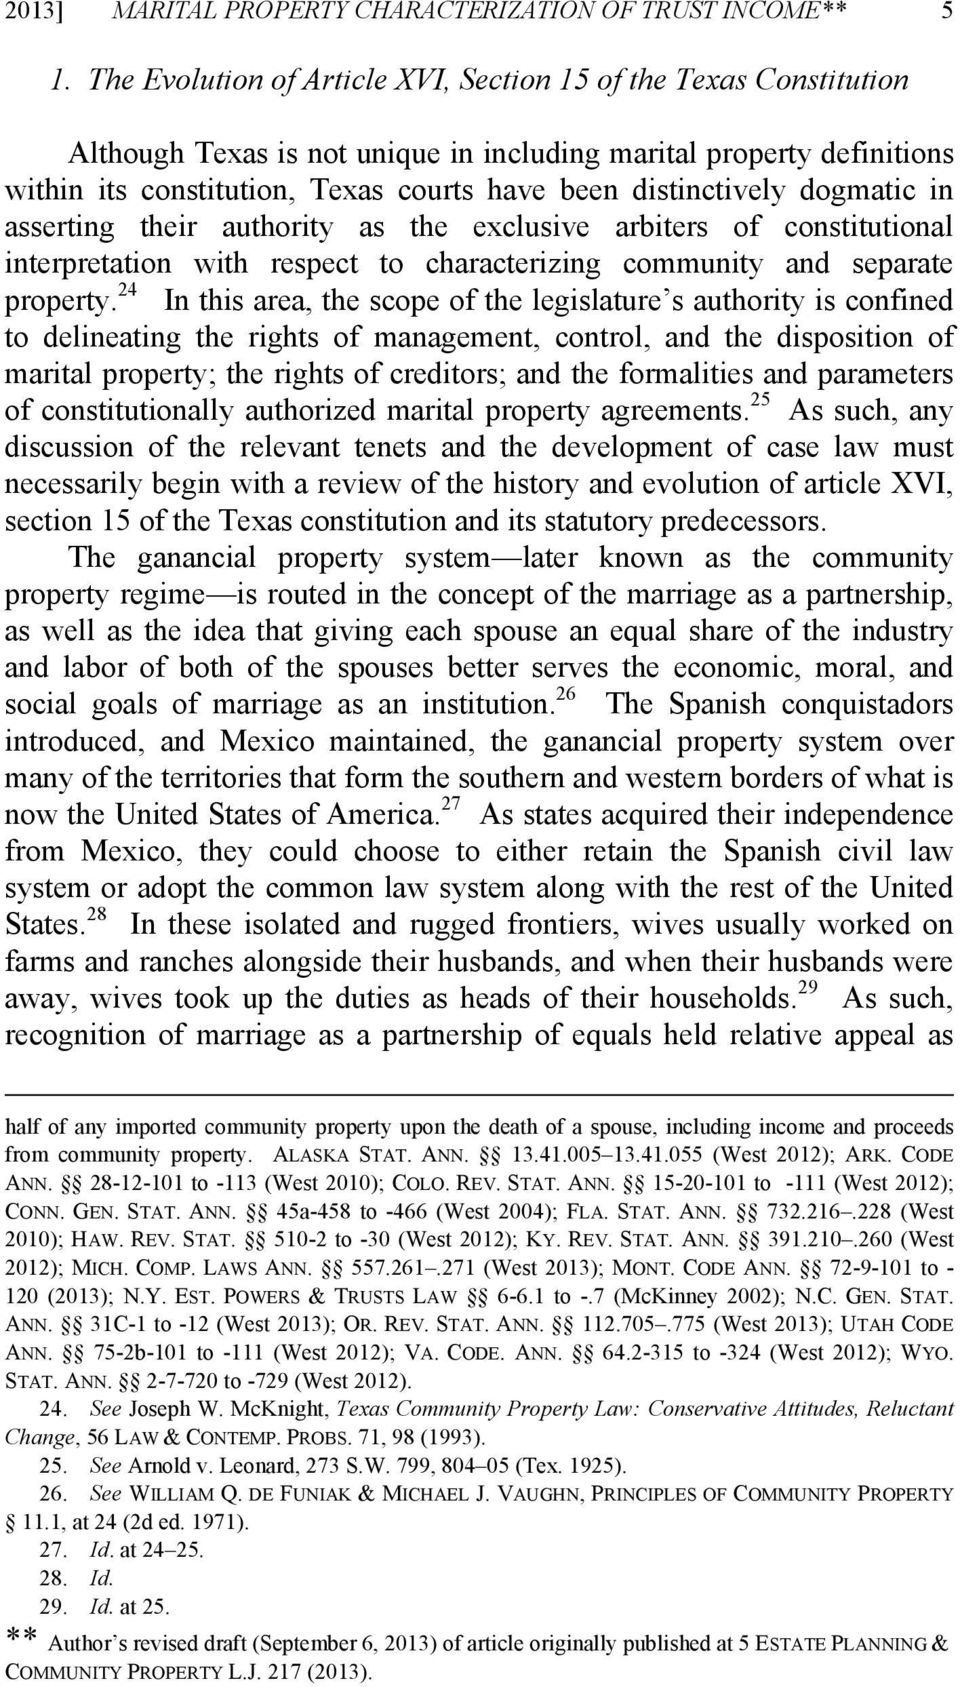 dogmatic in asserting their authority as the exclusive arbiters of constitutional interpretation with respect to characterizing community and separate property.